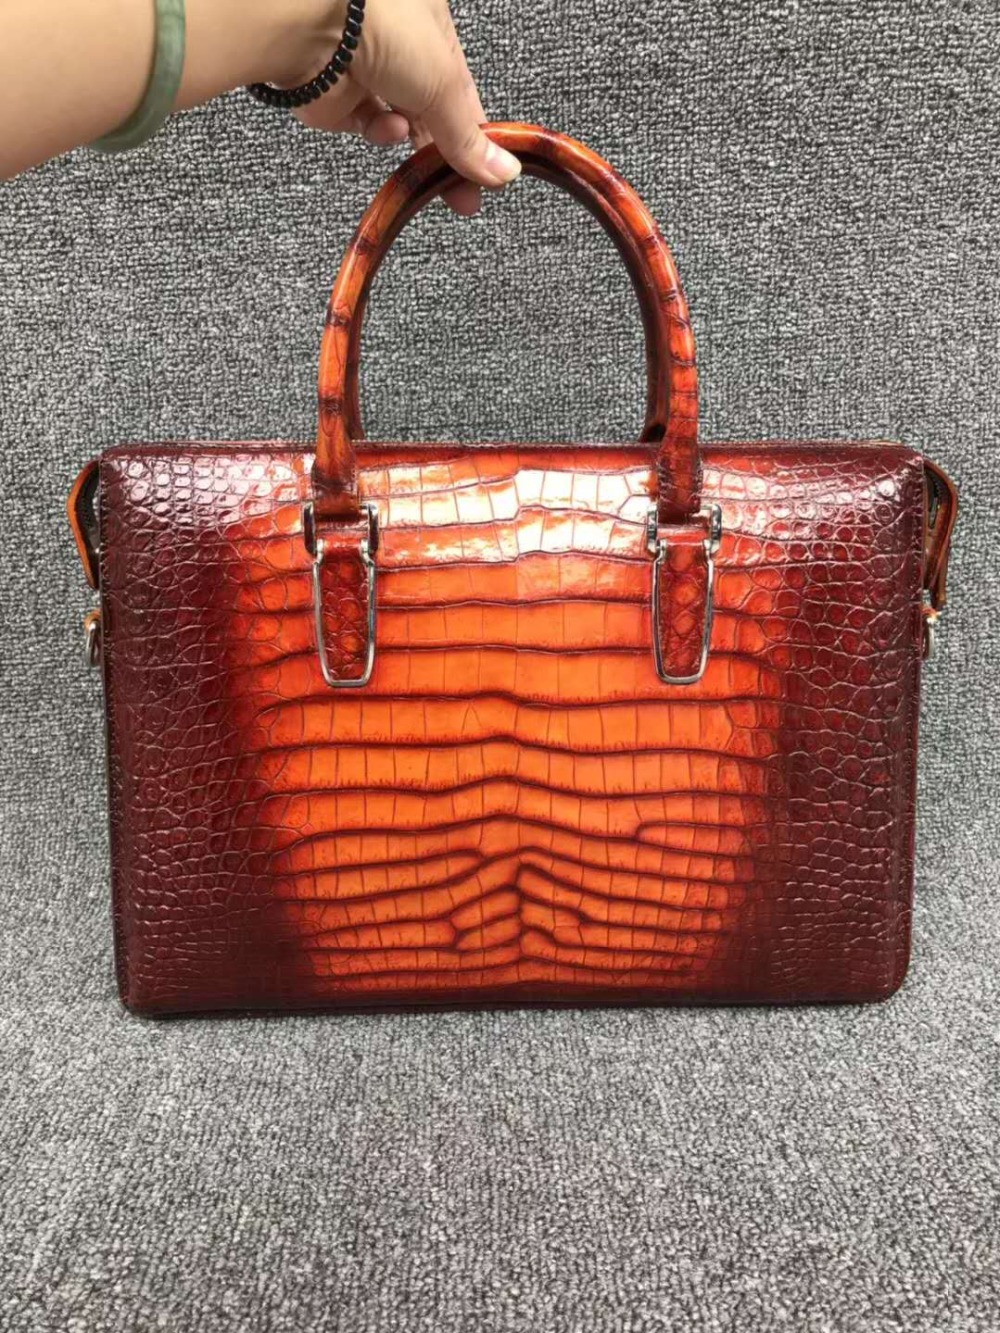 100% Genuine Real Crocodile Leather Belly Skin Men Business Bag Briefcase Zipper With Strap 2 Colors Orange+brown Crocodile Skin